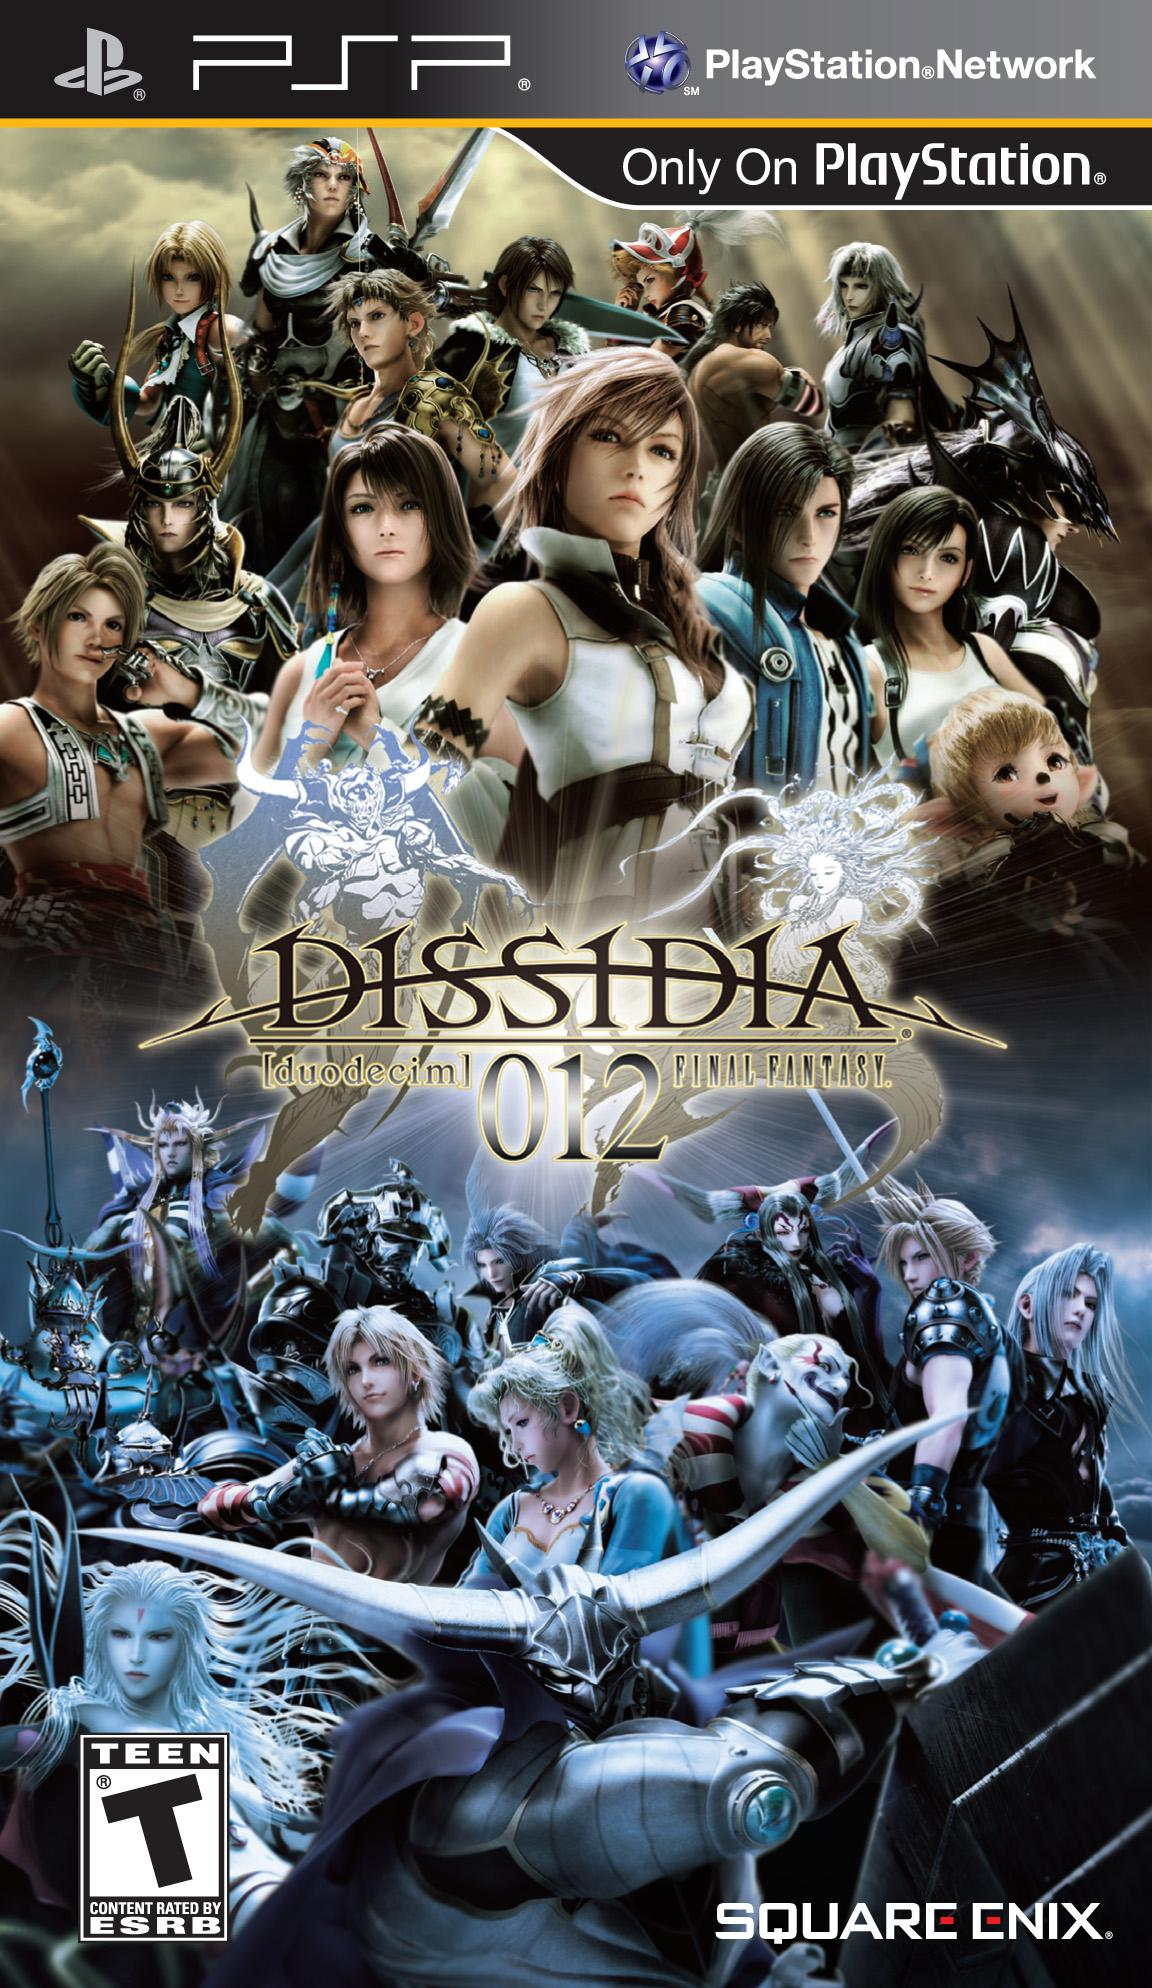 Dissidia 012 Final Fantasy [6.35] [Español] [PSP] [MF] (Links Rotos)